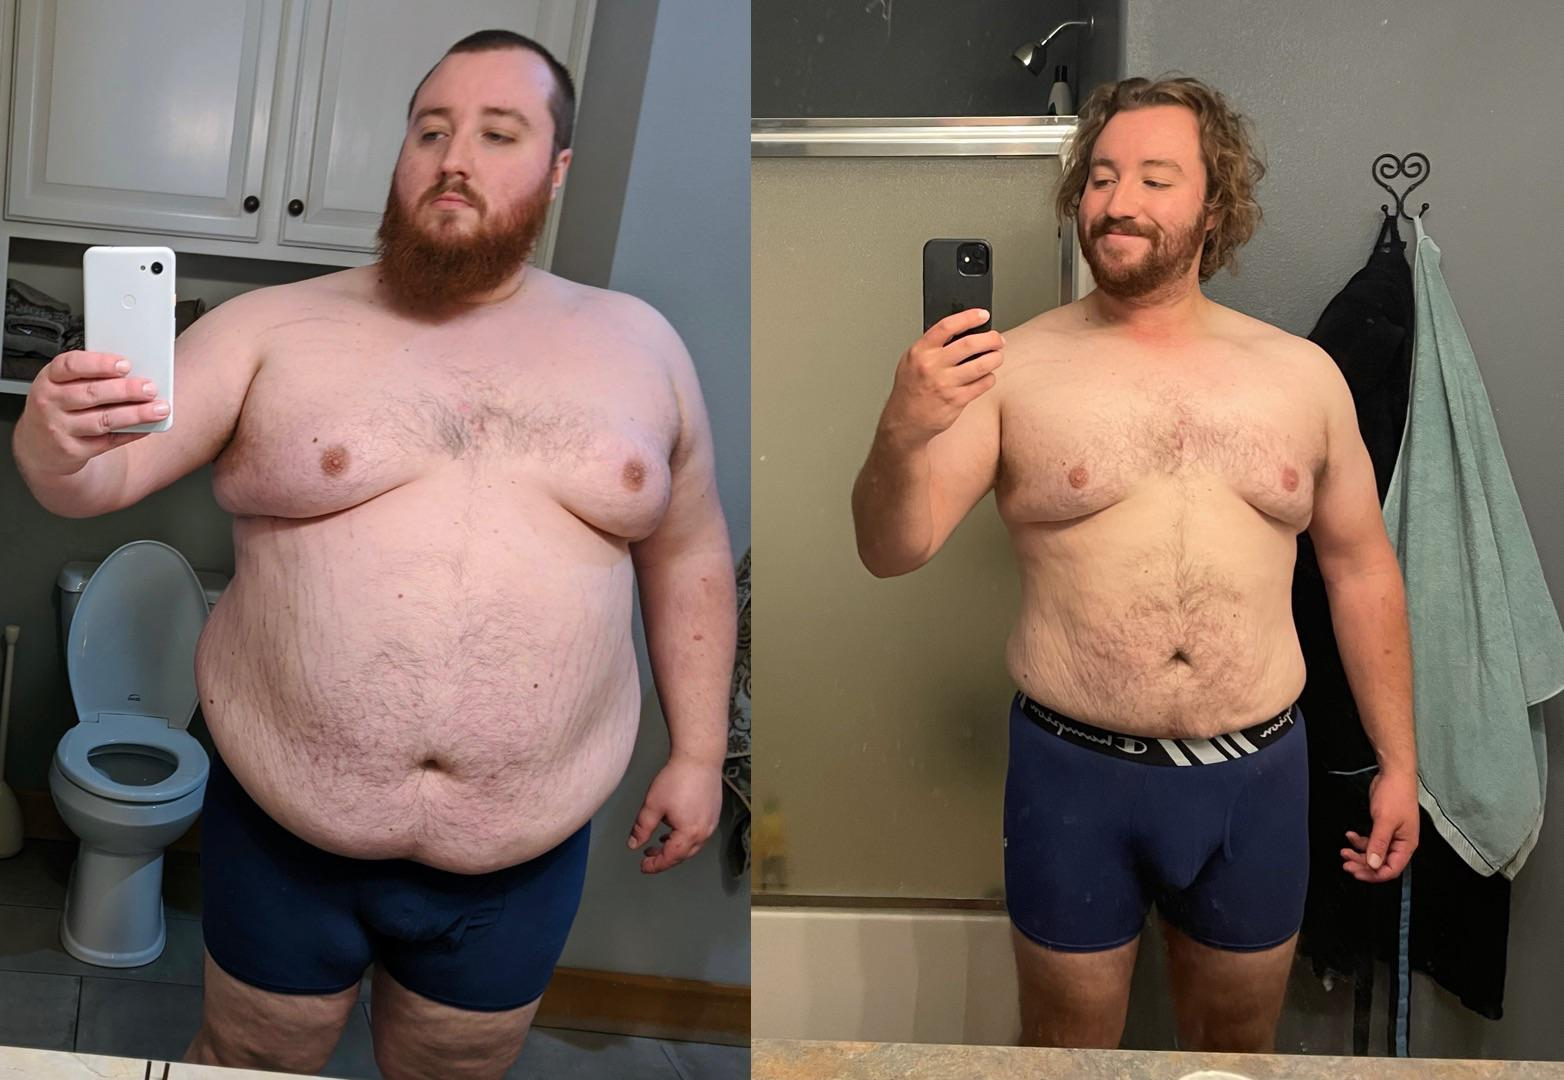 6 foot Male 135 lbs Fat Loss Before and After 370 lbs to 235 lbs